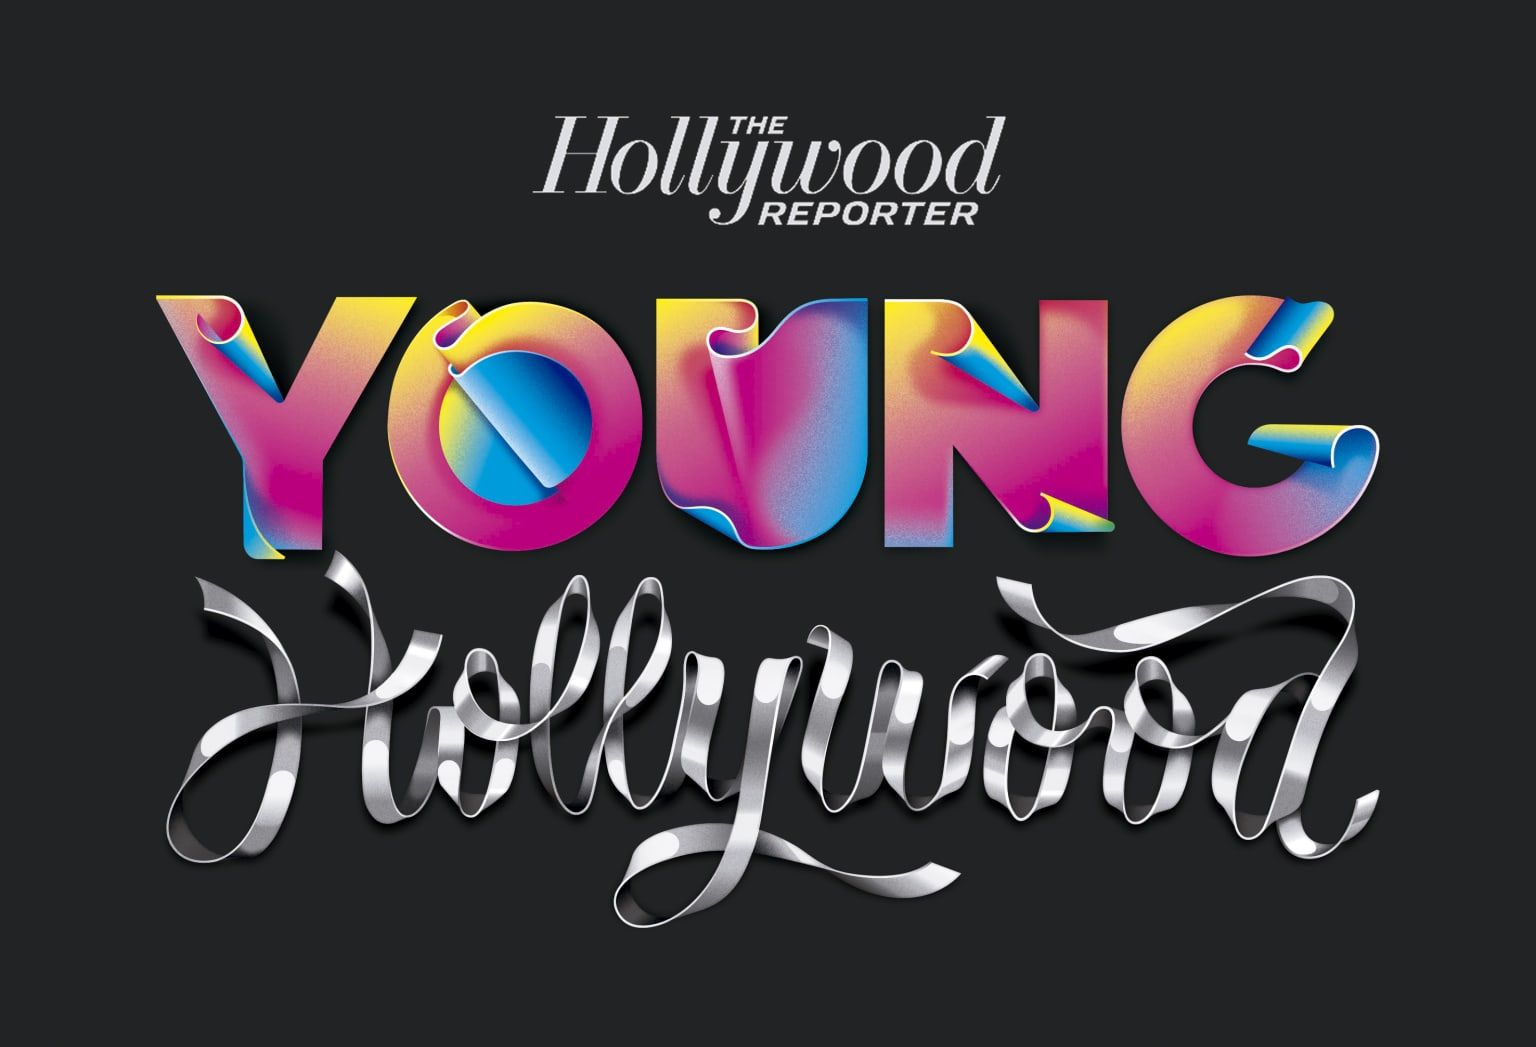 Young Hollywood / The Hollywood reporter